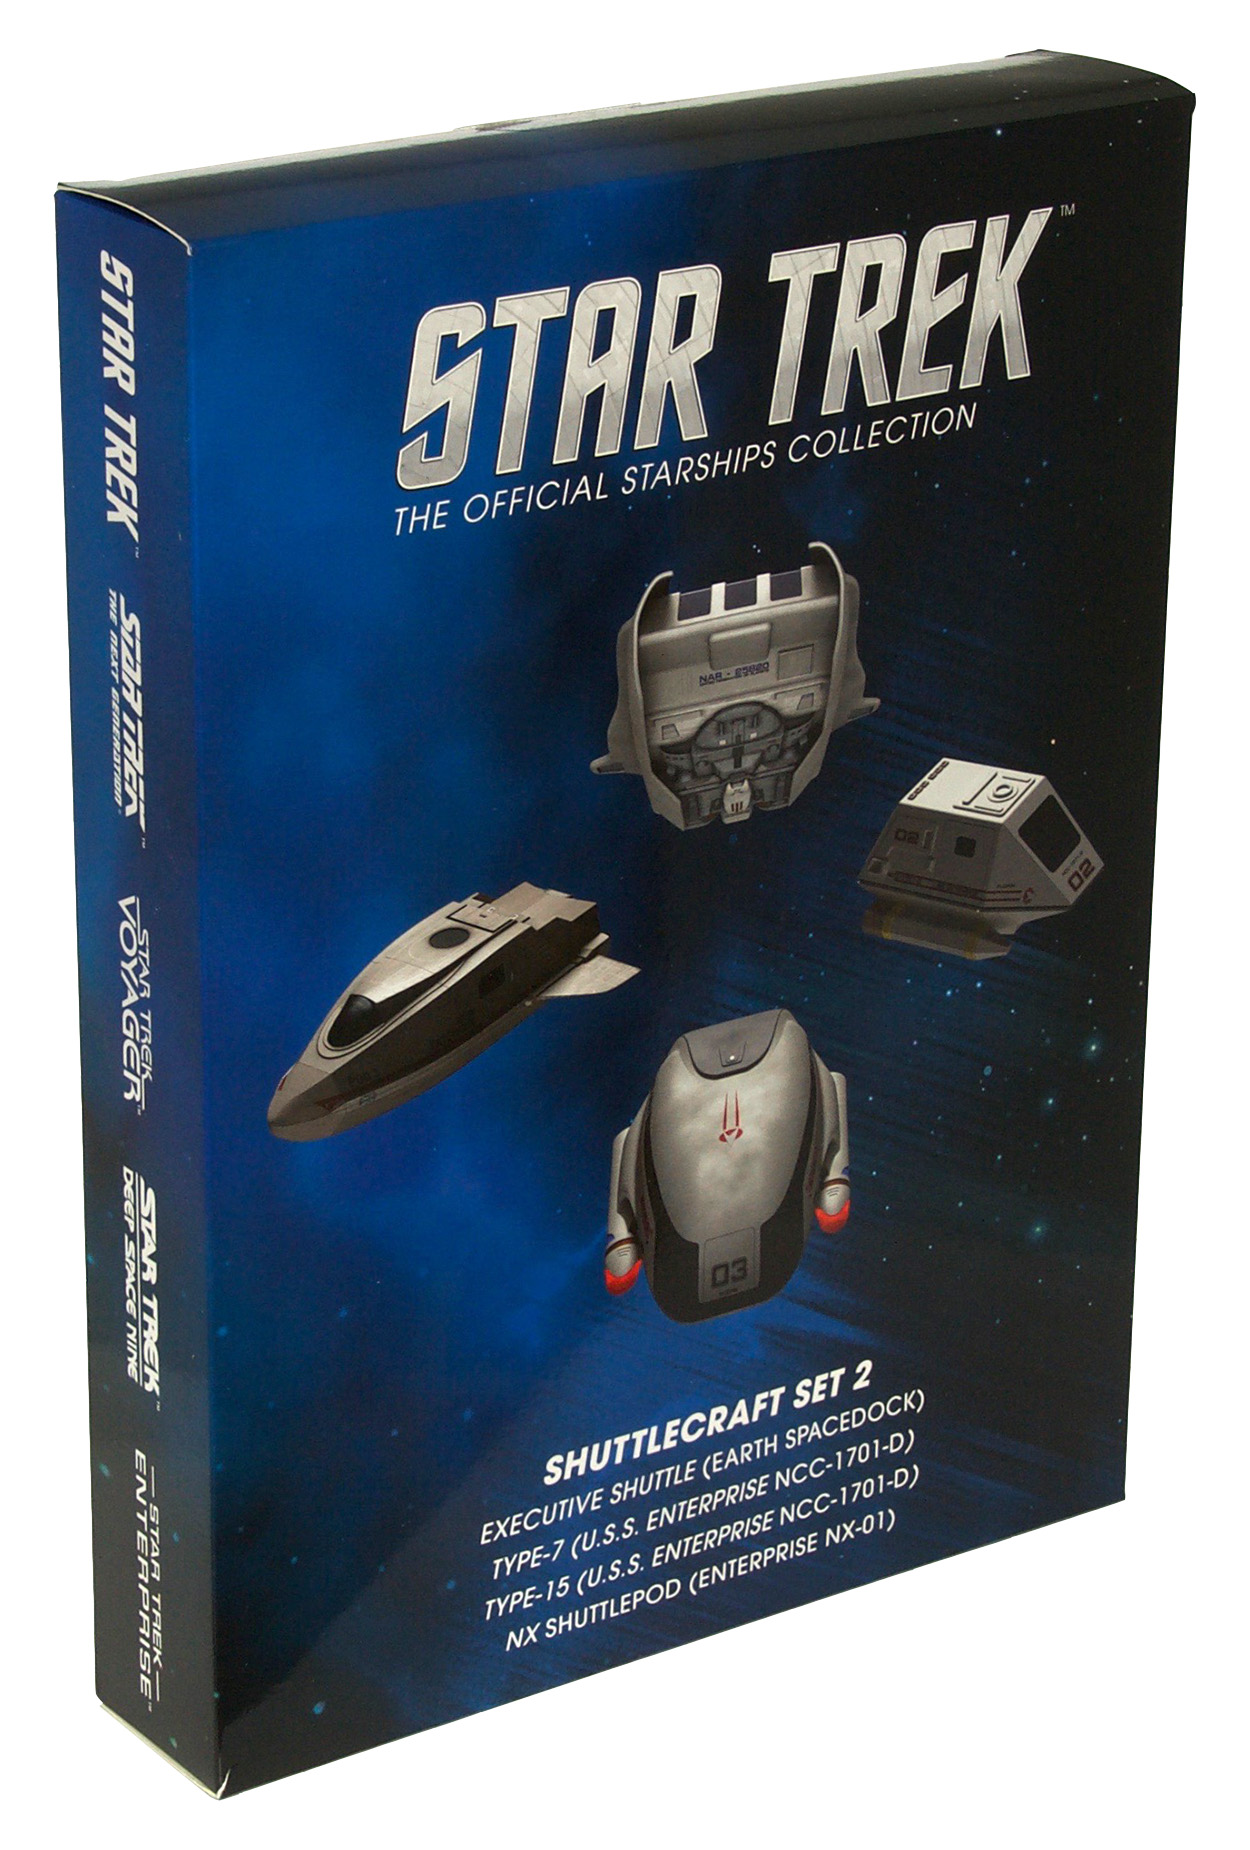 Eaglemoss Star Trek Starships Shuttle Set 2 Box